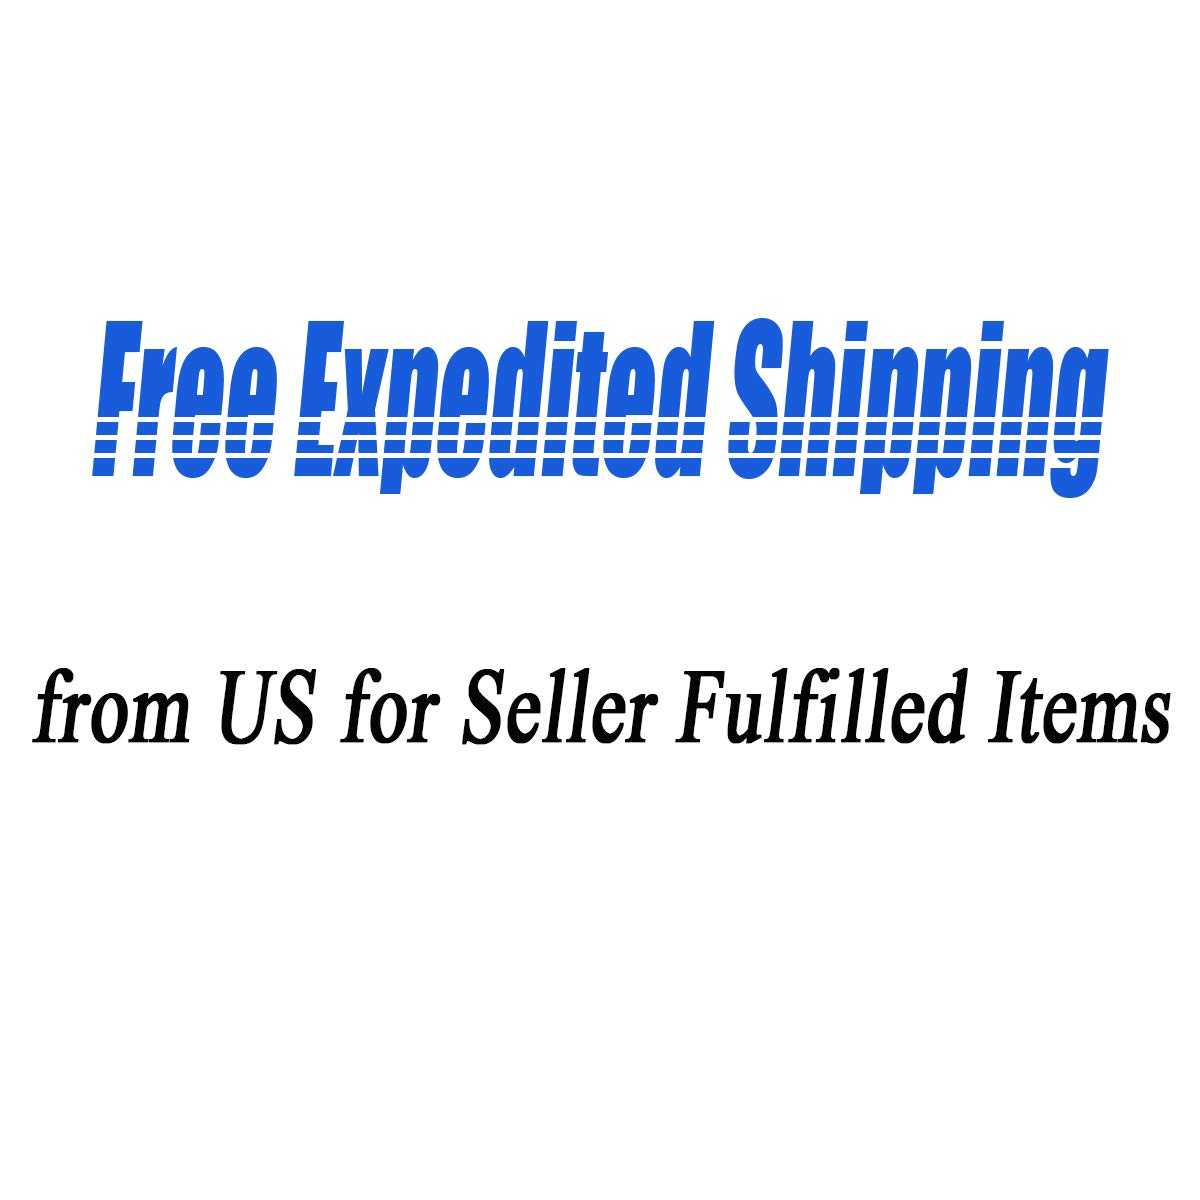 Wifond from US for Seller Fulfilled Items